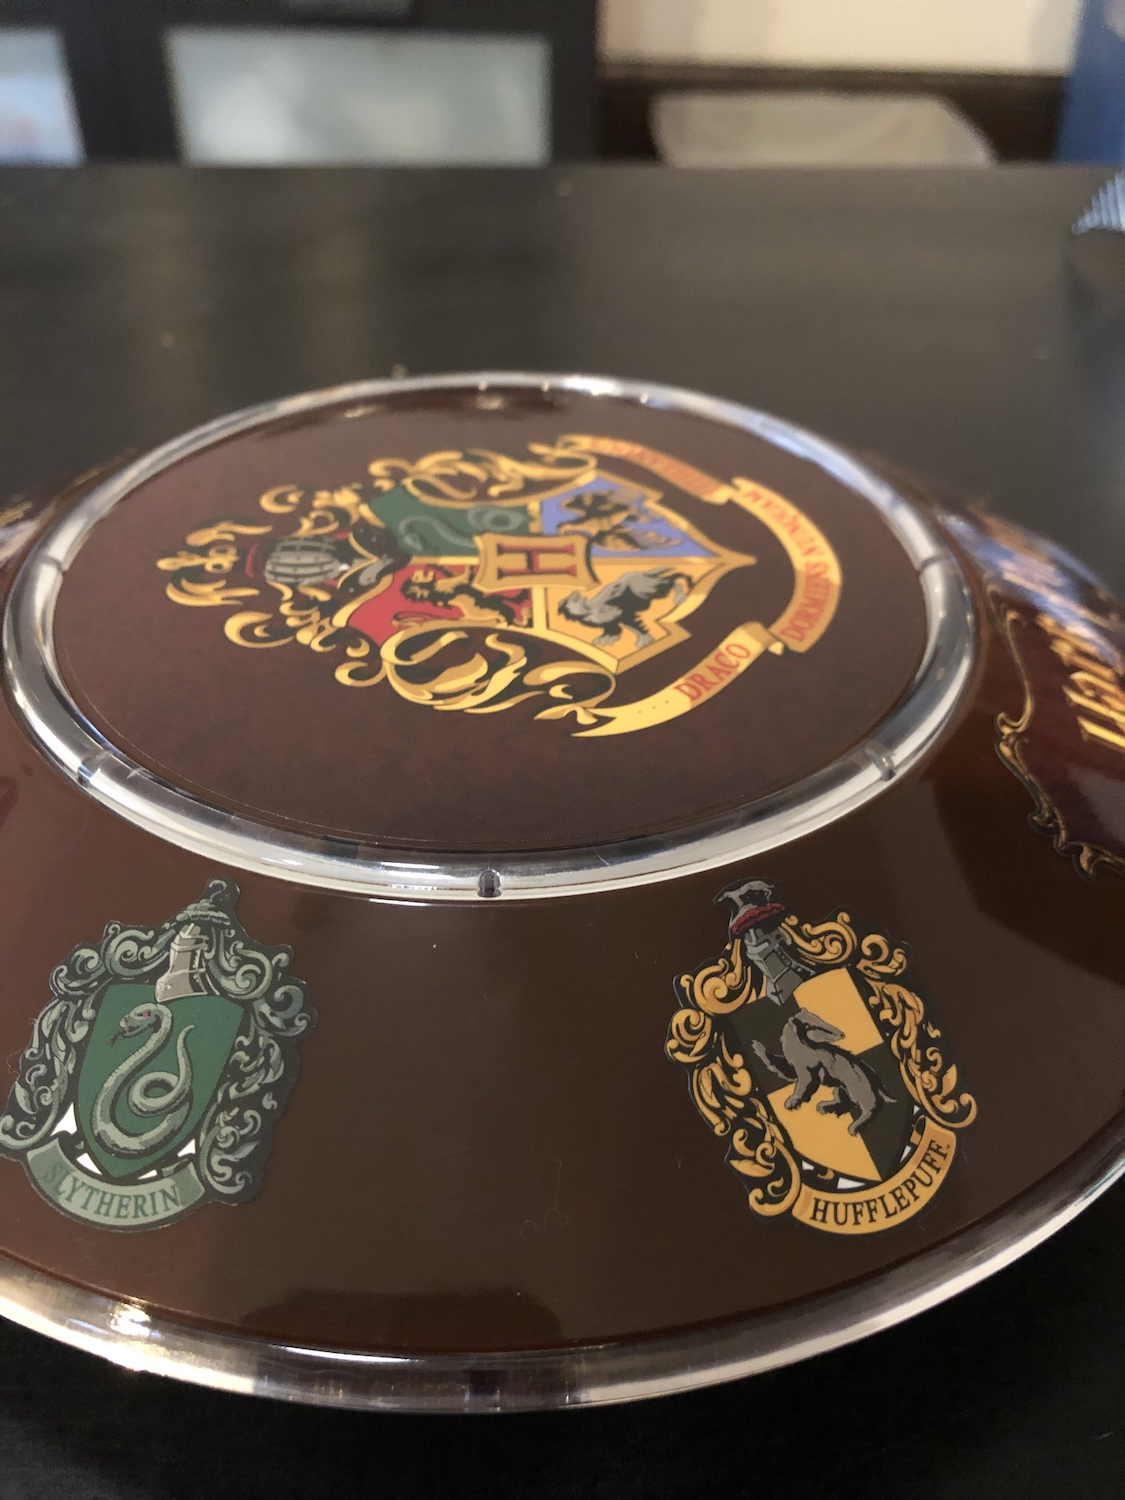 One side of the base has the Slytherin and Hufflepuff House crests.